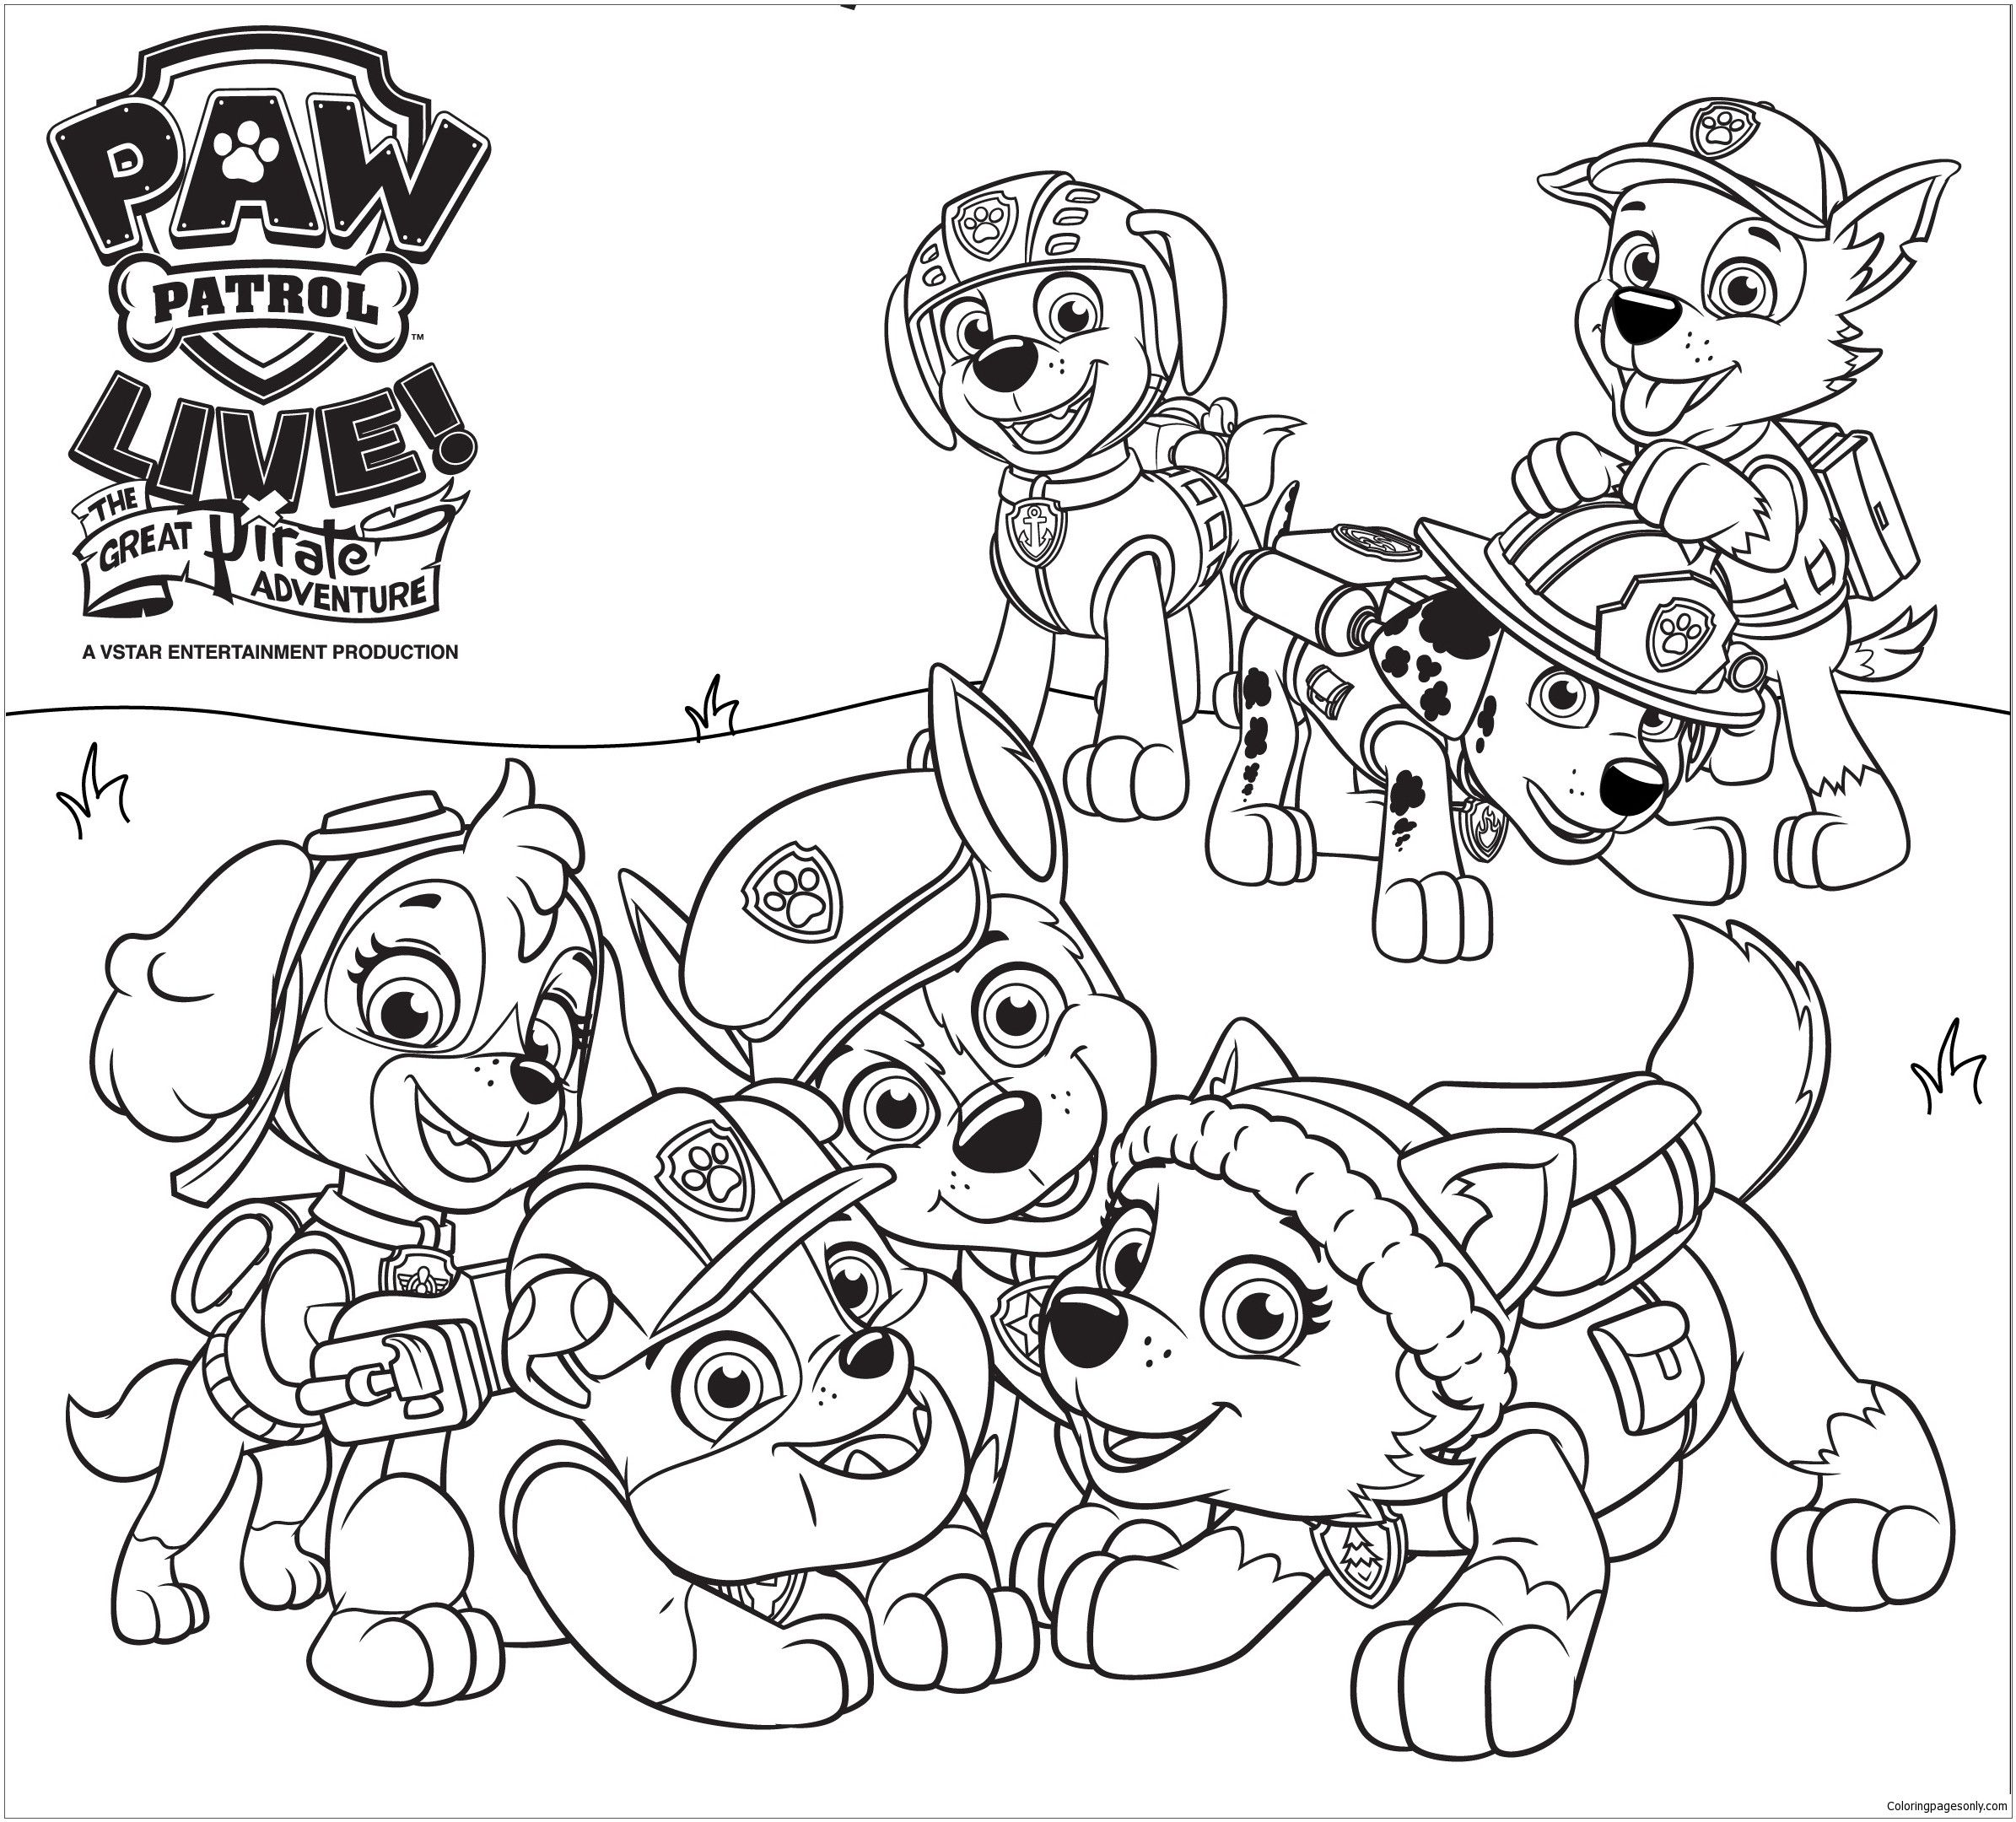 Paw Patrol 45 Paw Patrol Coloring Pages Paw Patrol Coloring Cartoon Coloring Pages